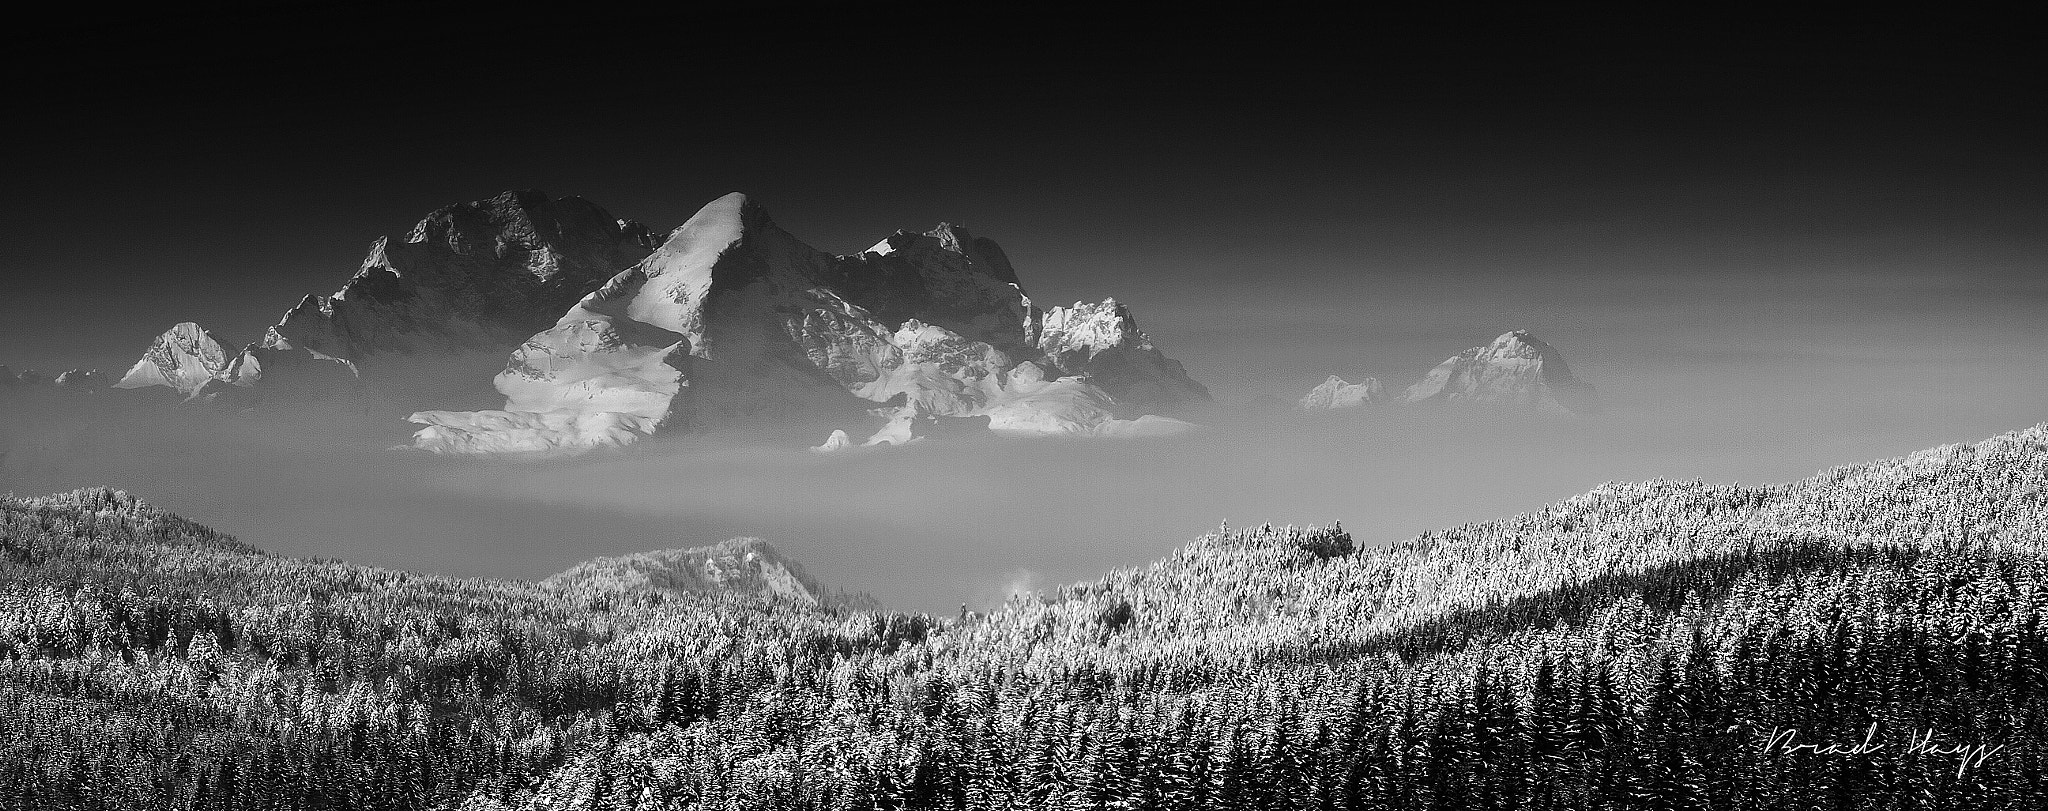 Photograph Alps Overlook by Brad Hays on 500px